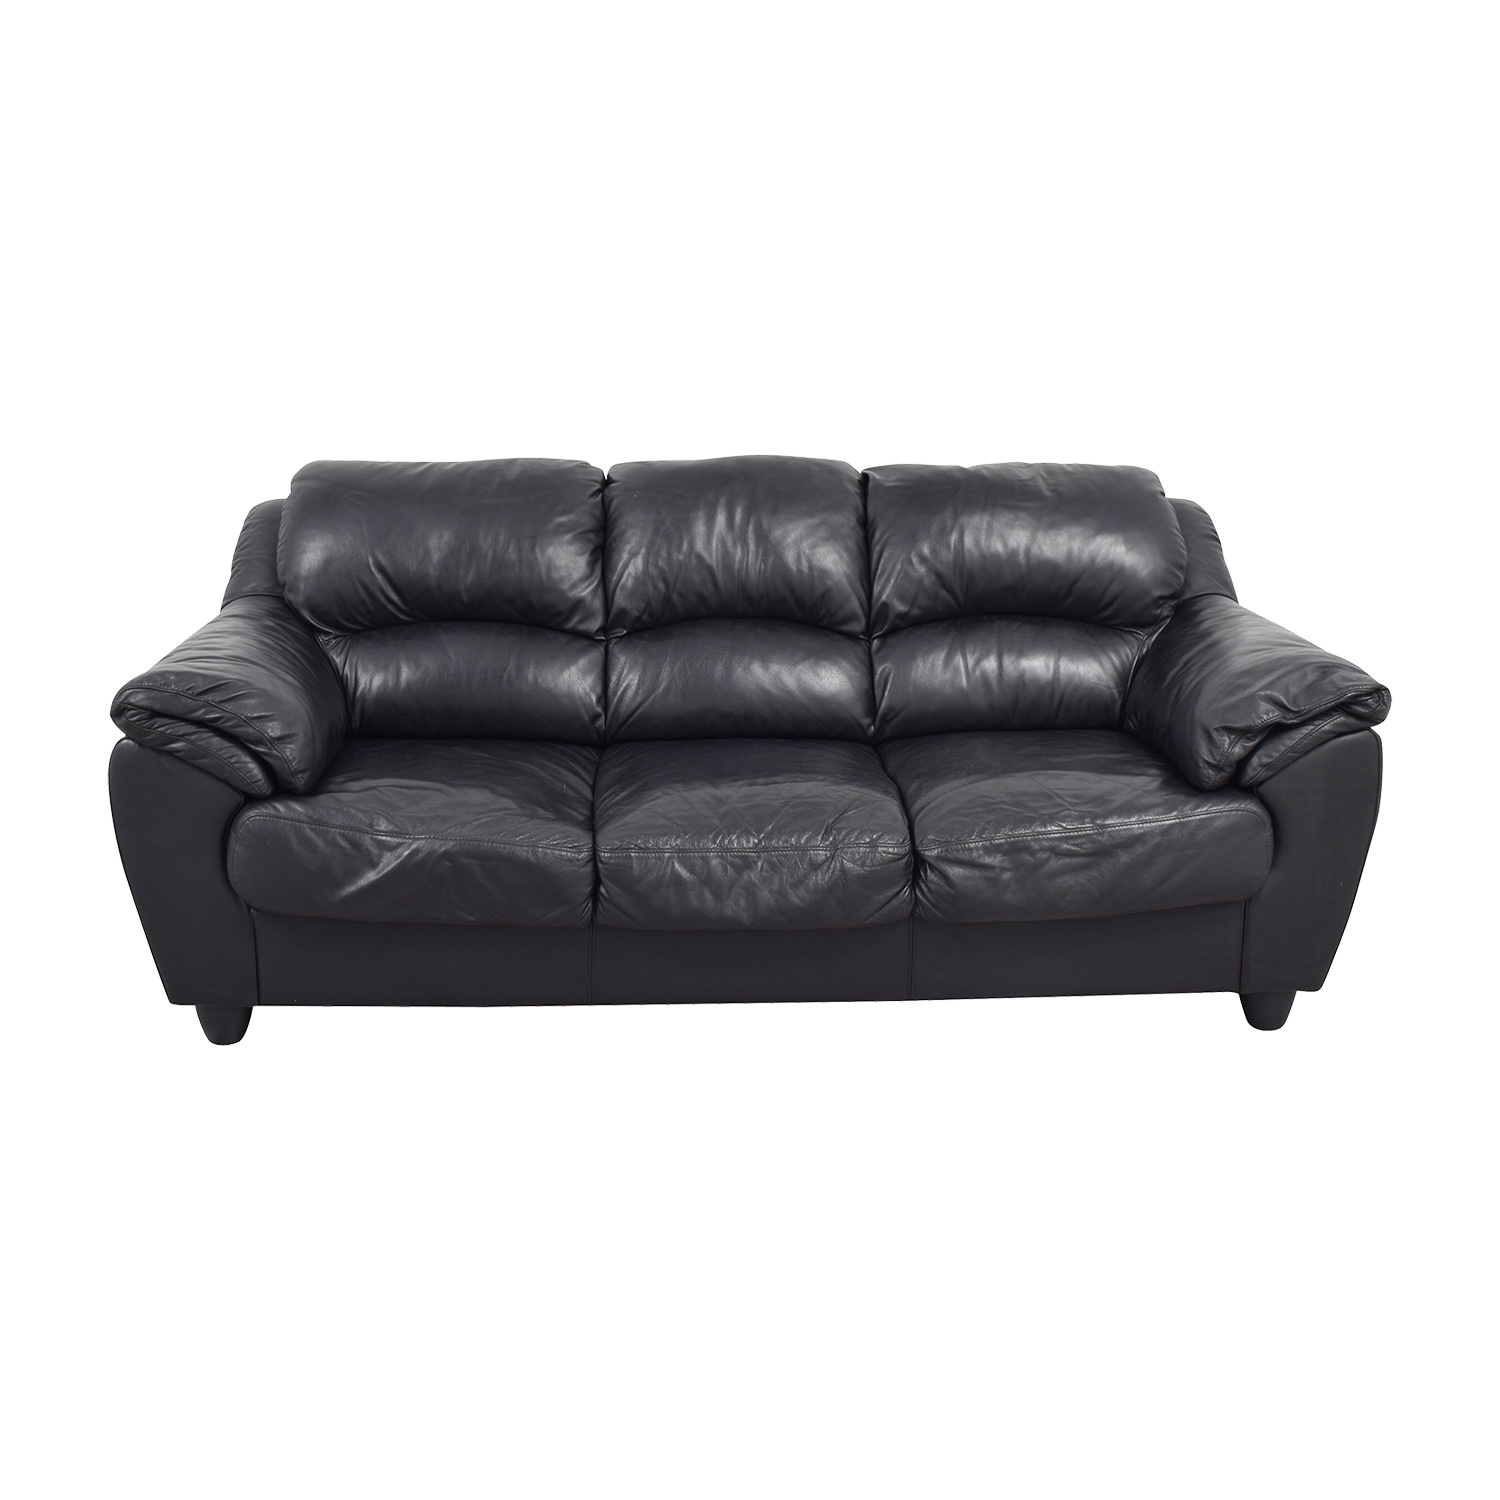 Raymour Flanigan Black Leather Couch Sofas